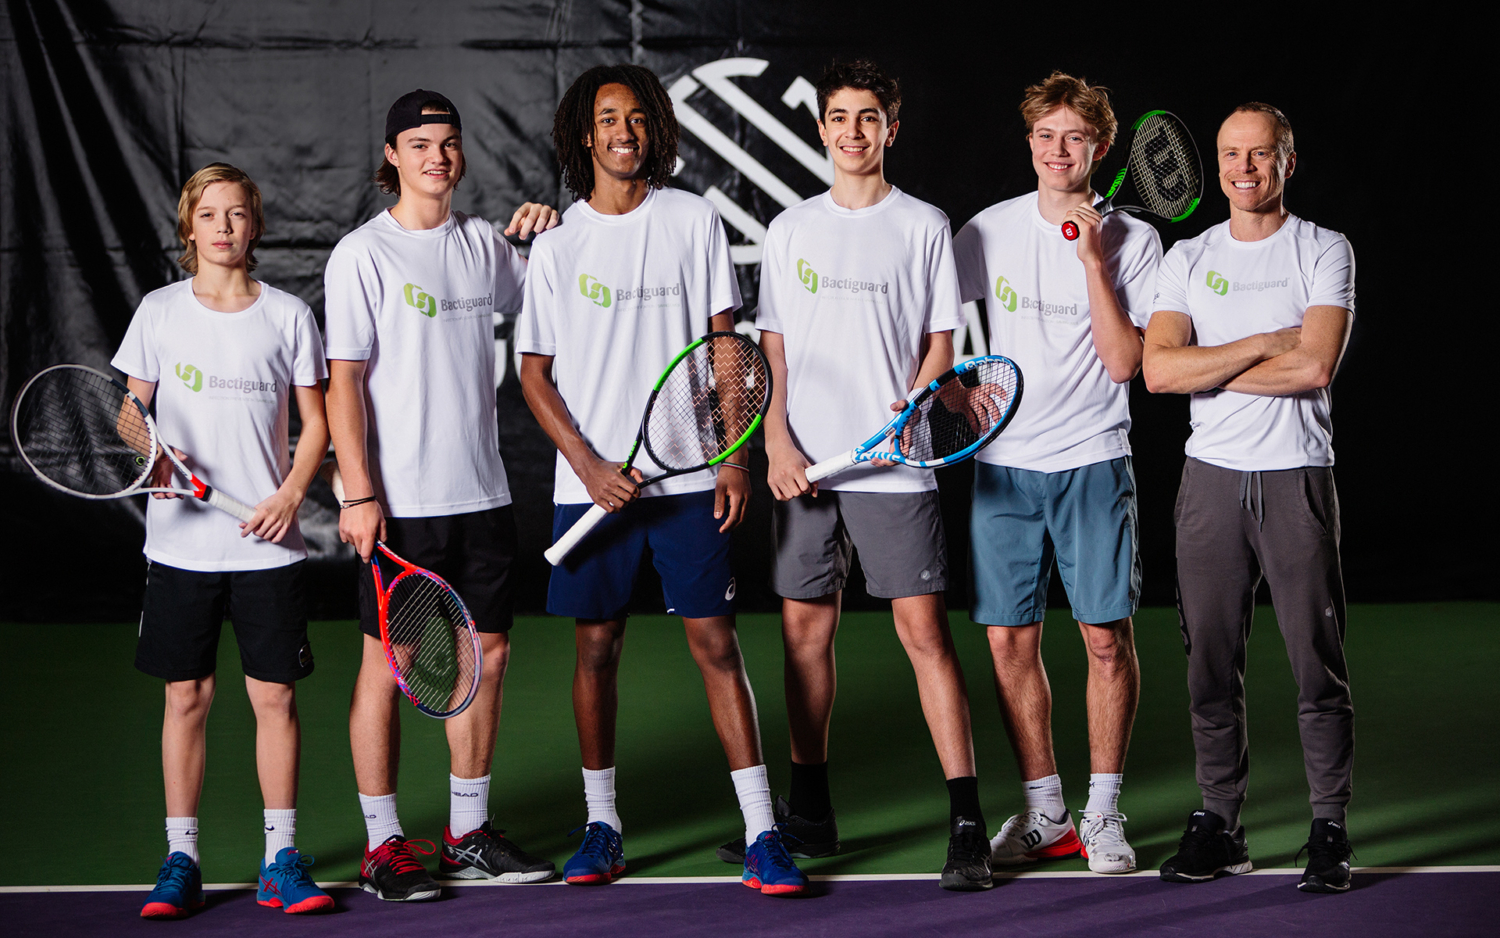 Team Bactiguard Tennis_Good to Great 1920 p